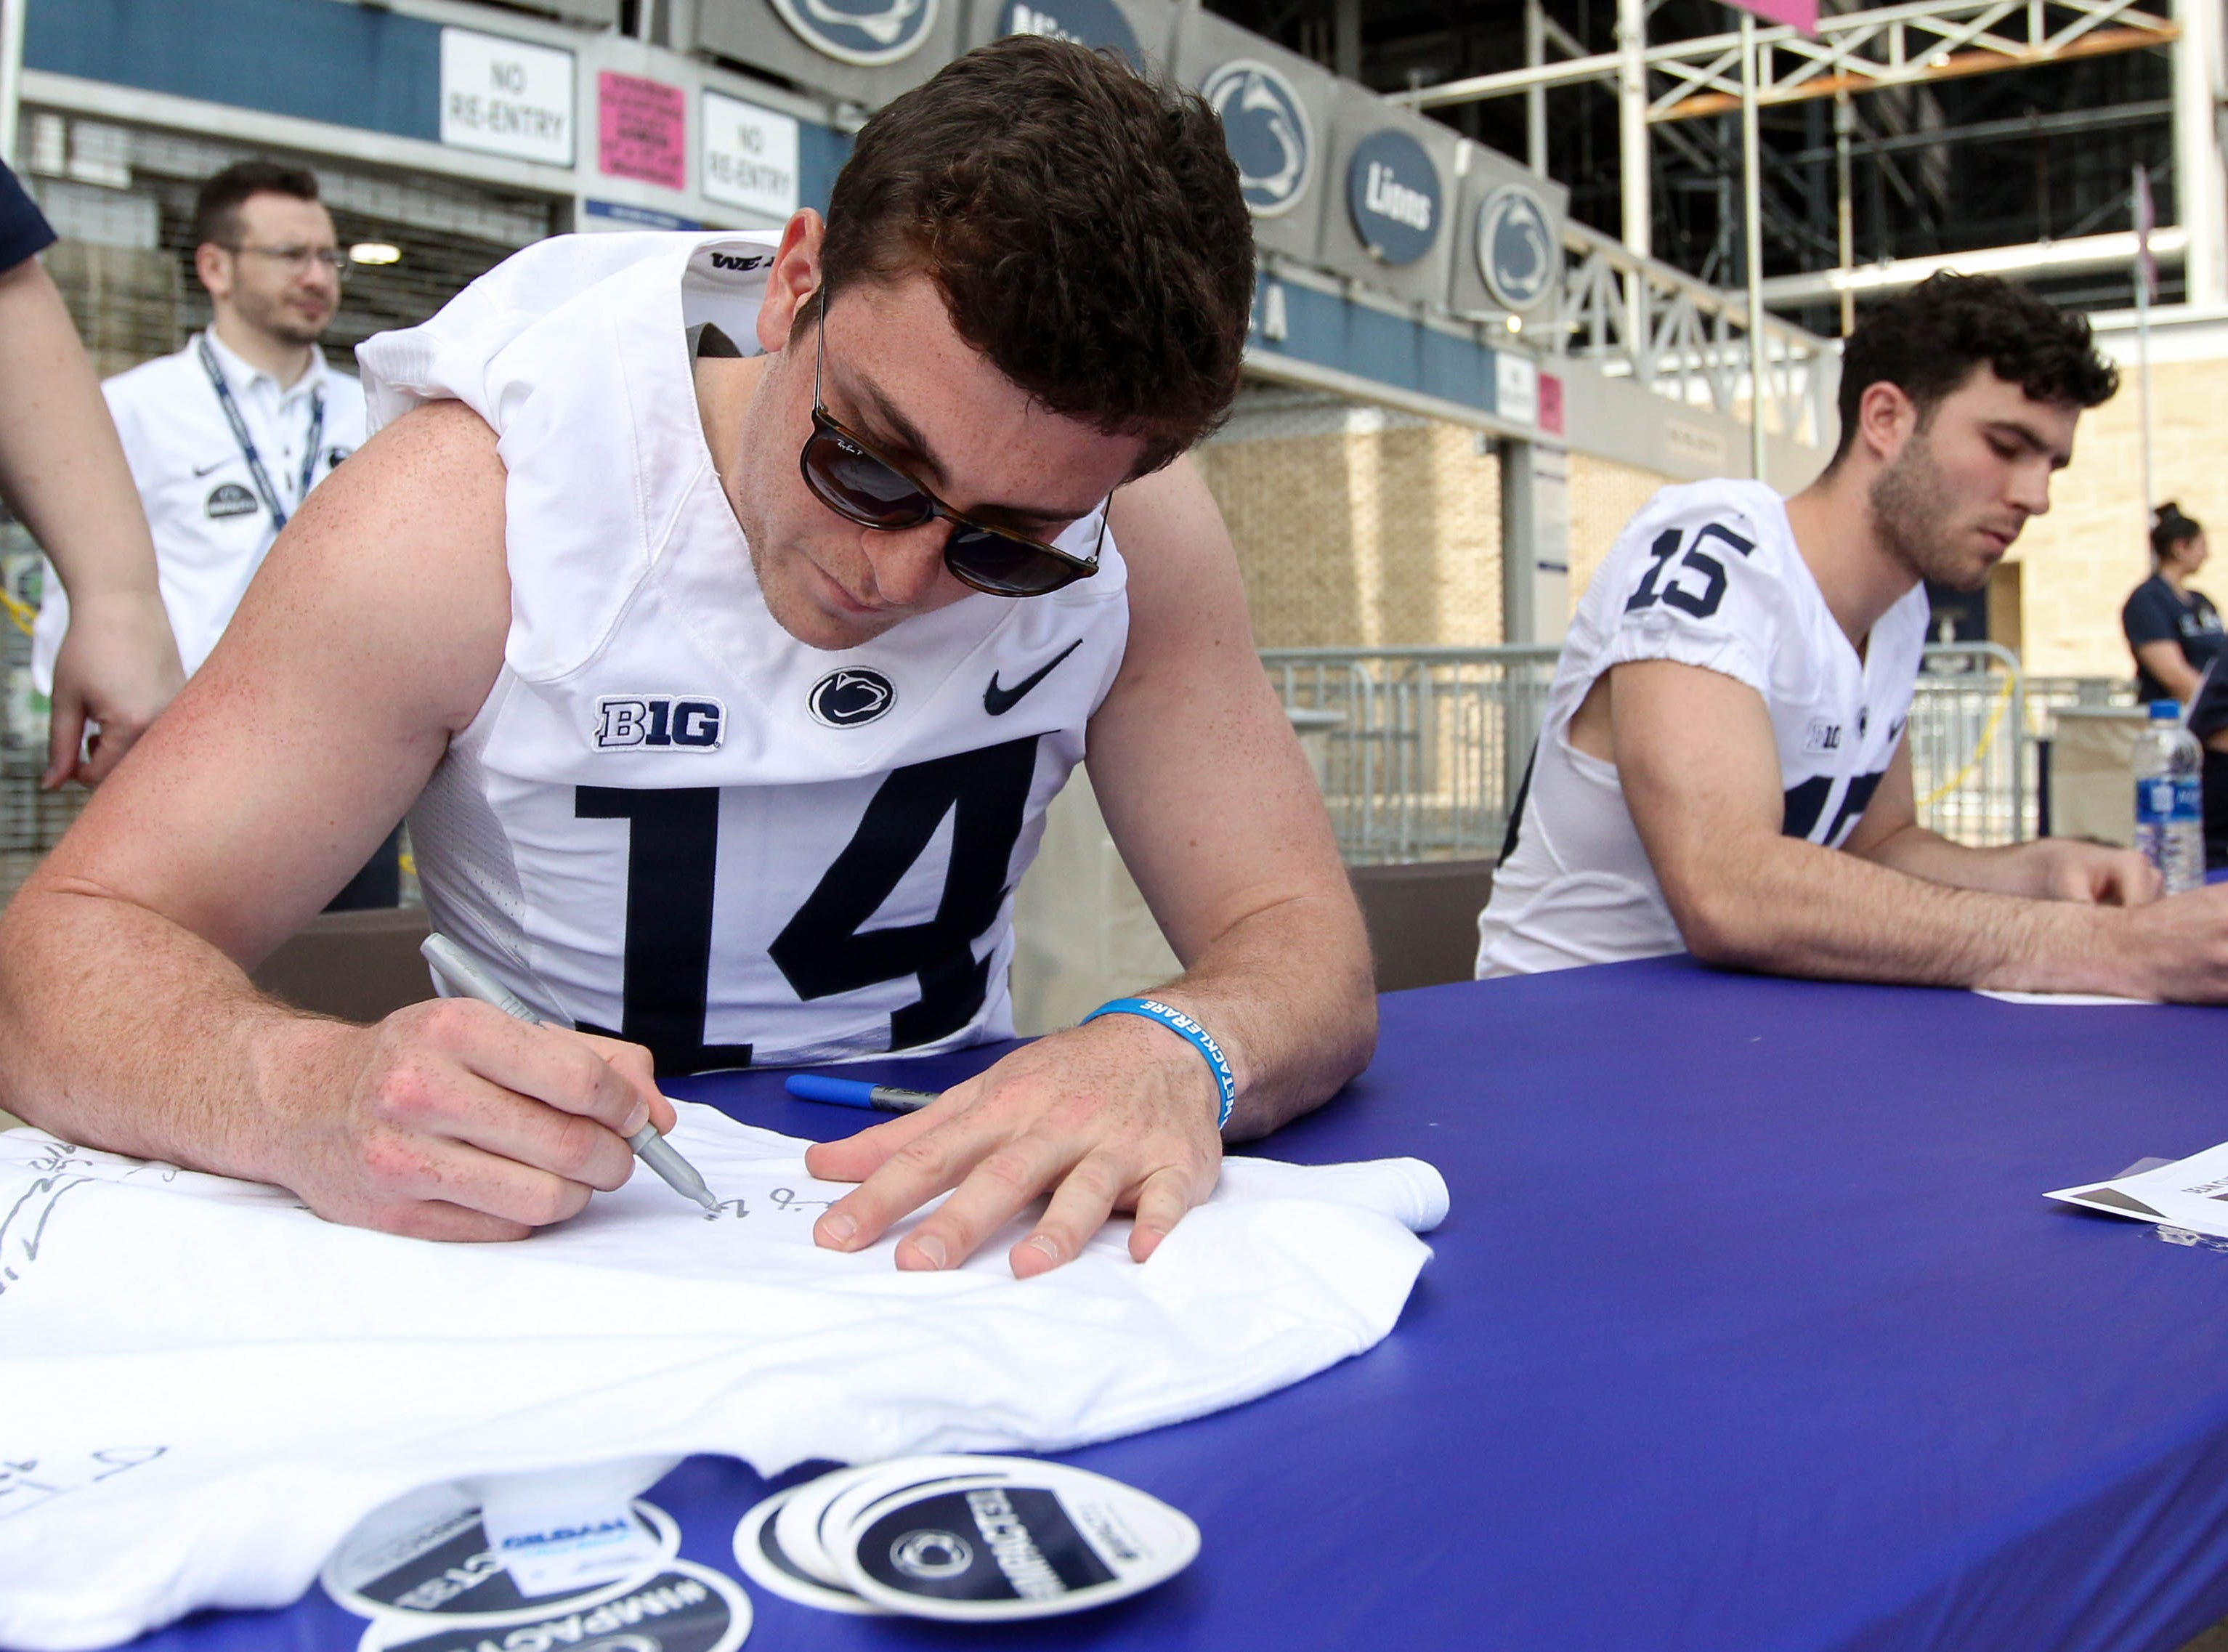 Apr 13, 2019; University Park, PA, USA; Penn State Nittany Lions quarterback Sean Clifford (14) signs an autograph for a fan prior to the Blue White spring game at Beaver Stadium. Mandatory Credit: Matthew O'Haren-USA TODAY Sports